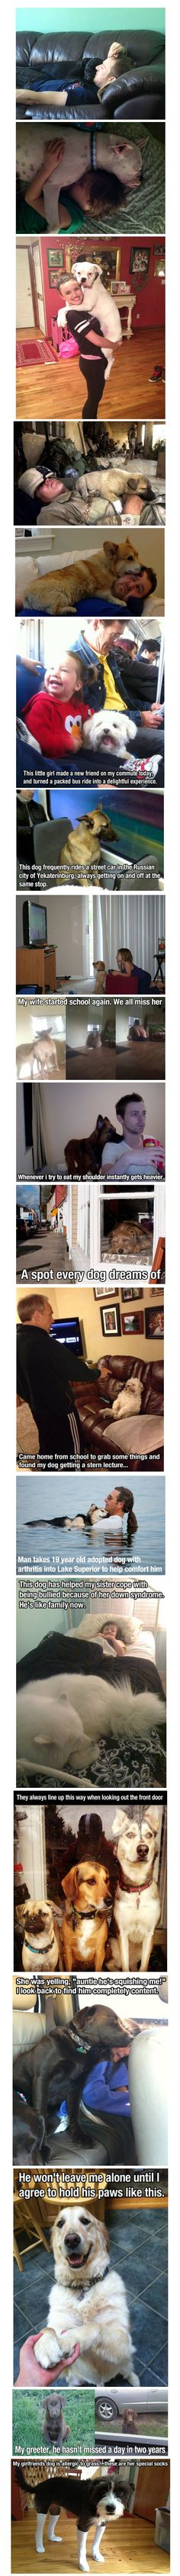 This is why I love dogs so much